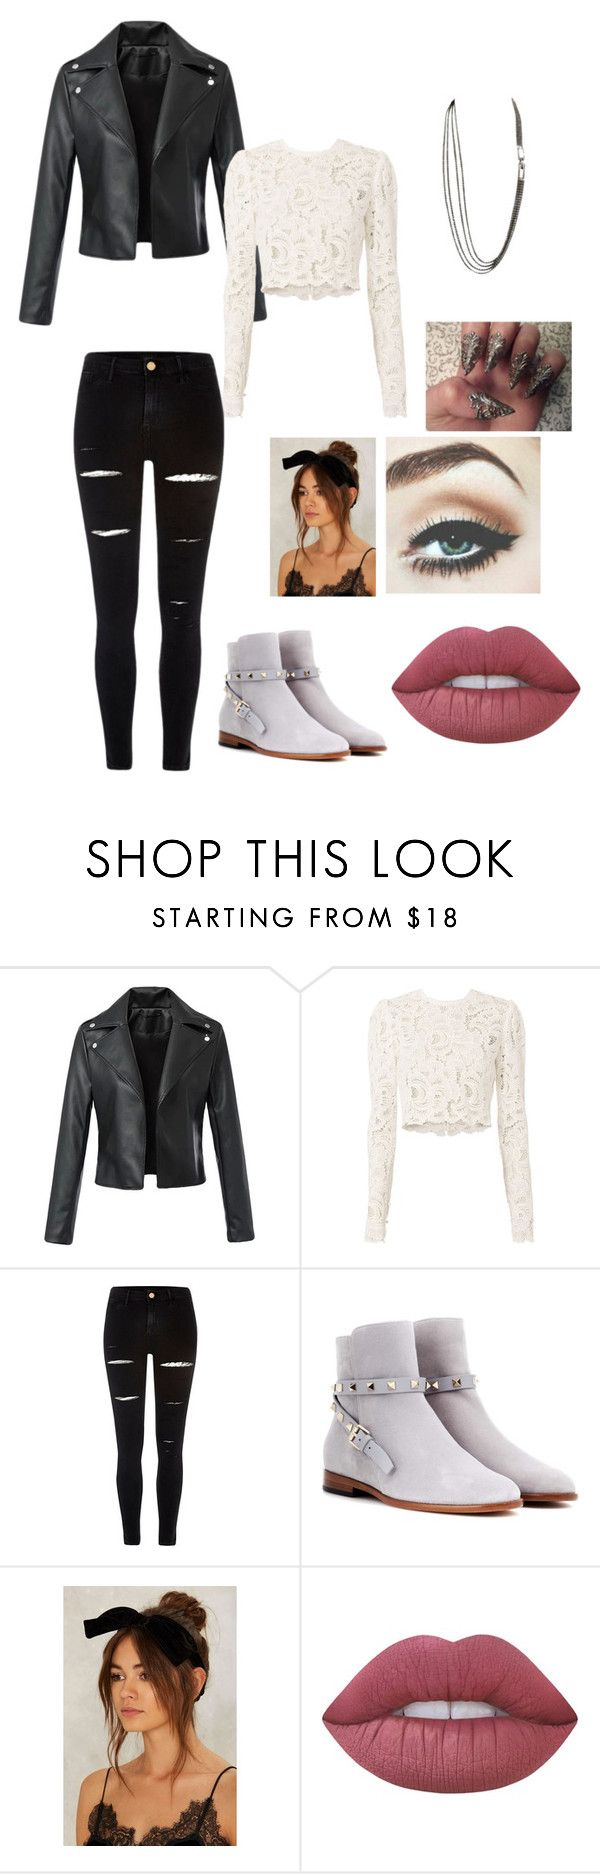 """Untitled #27"" by moriartylauren on Polyvore featuring A.L.C., River Island, Valentino, Lime Crime and Salvatore Ferragamo"